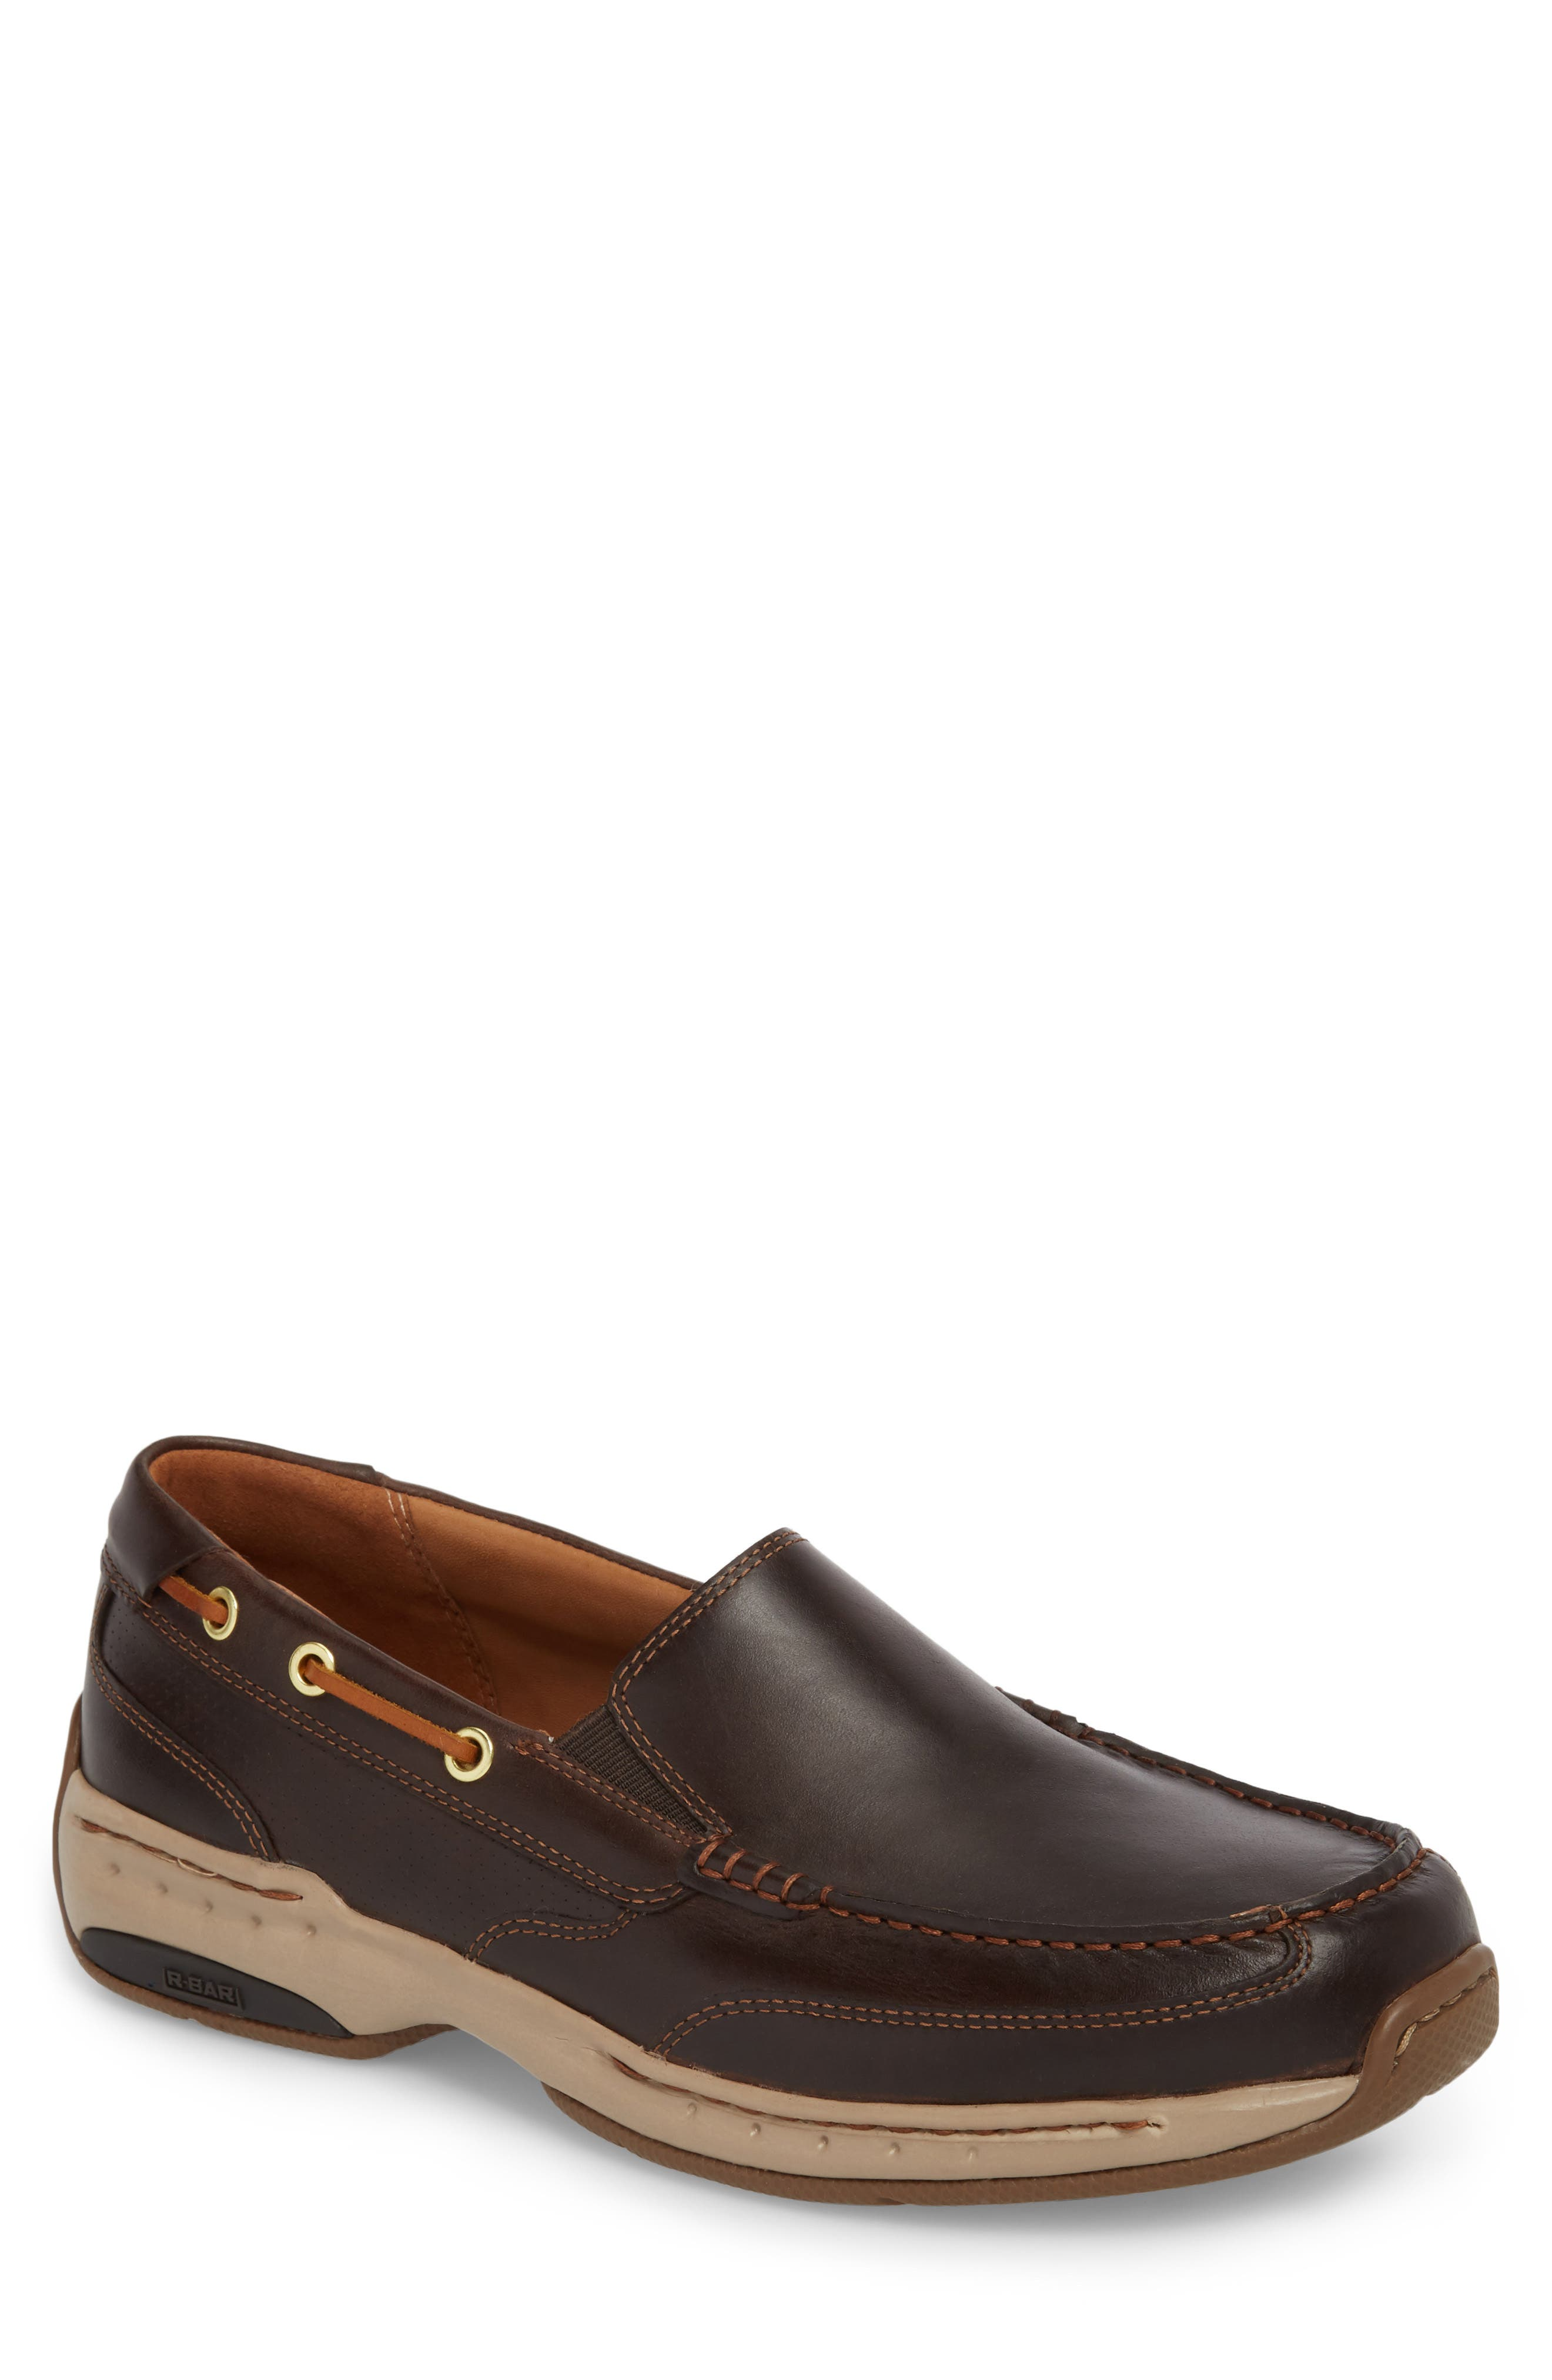 Waterford Water Resistant Slip-On,                             Main thumbnail 1, color,                             Tan Leather